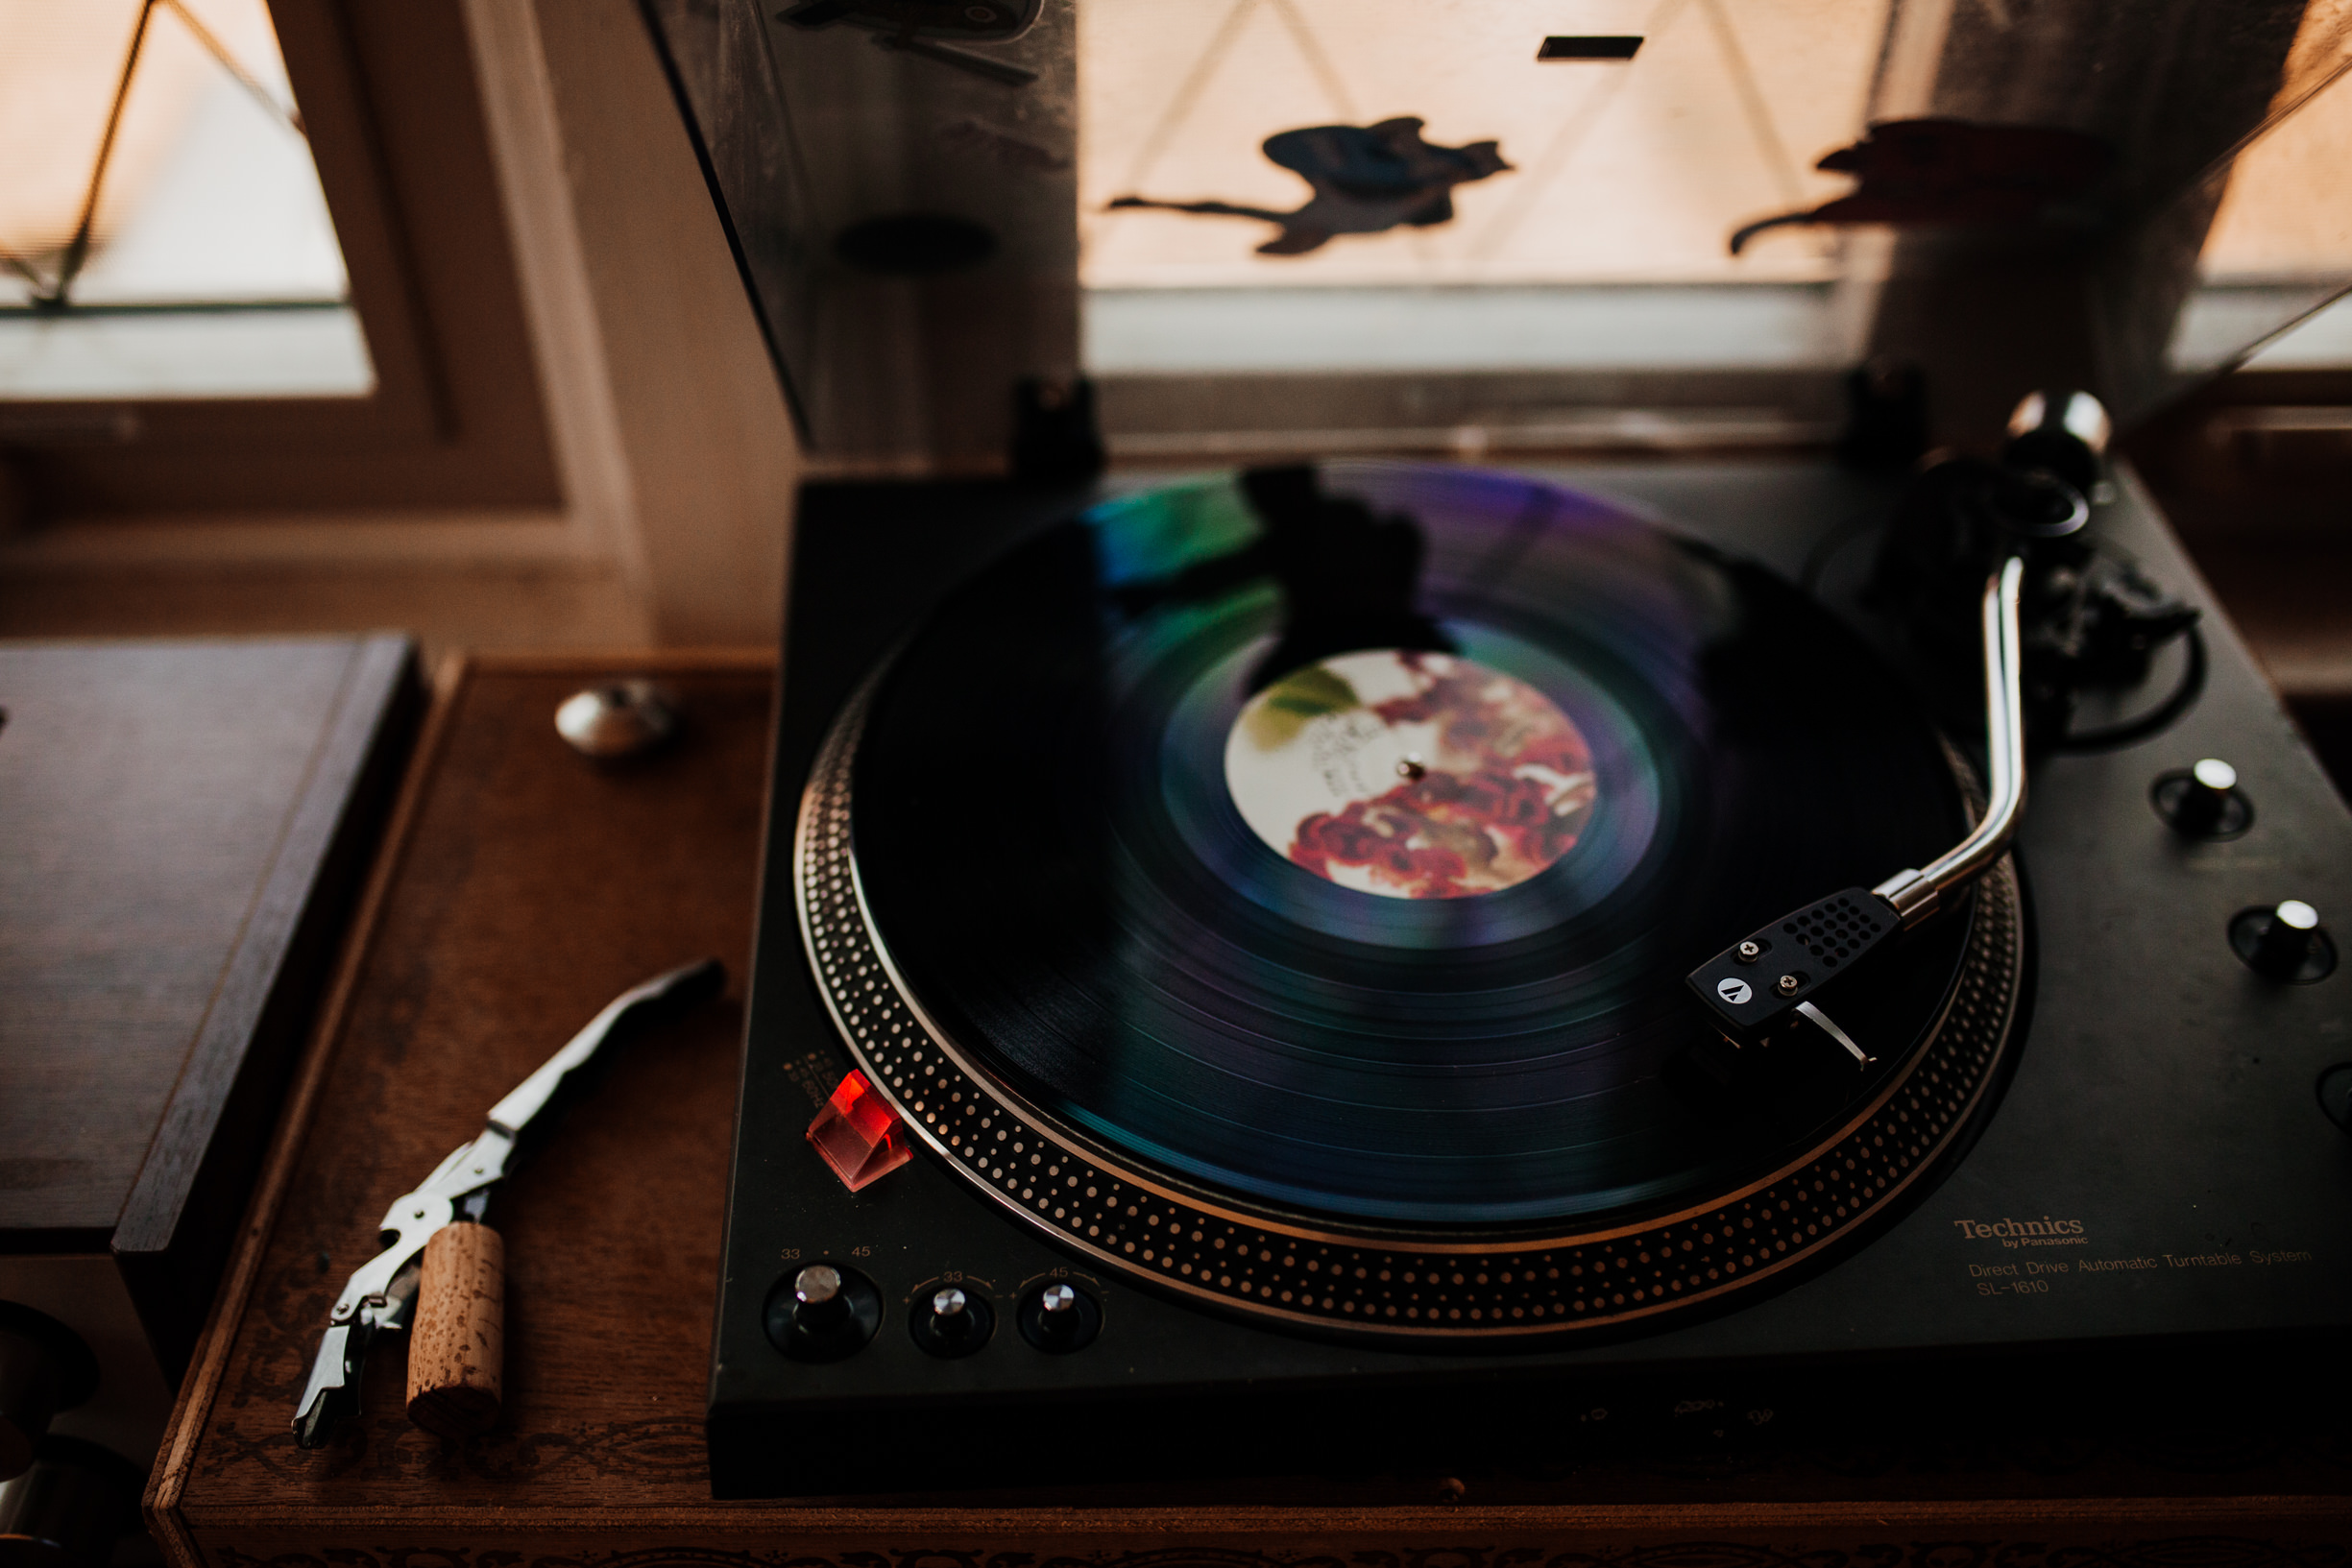 louisville-engagement-photographer-record-store-in-home-session-crystal-ludwick-photo (26 of 53).jpg